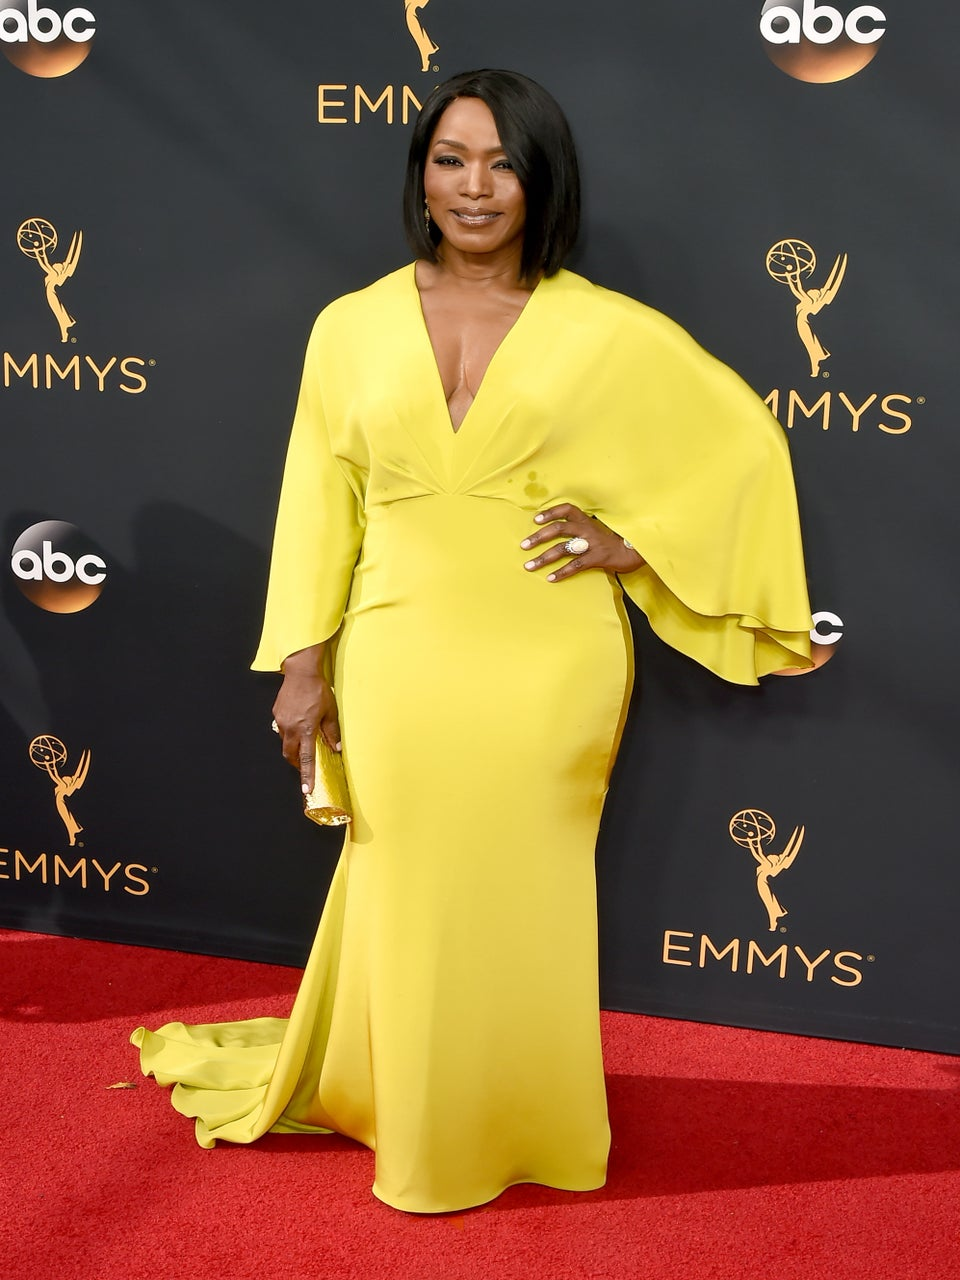 Is Angela Bassett Wearing Lane Bryant on the Emmys Red Carpet?